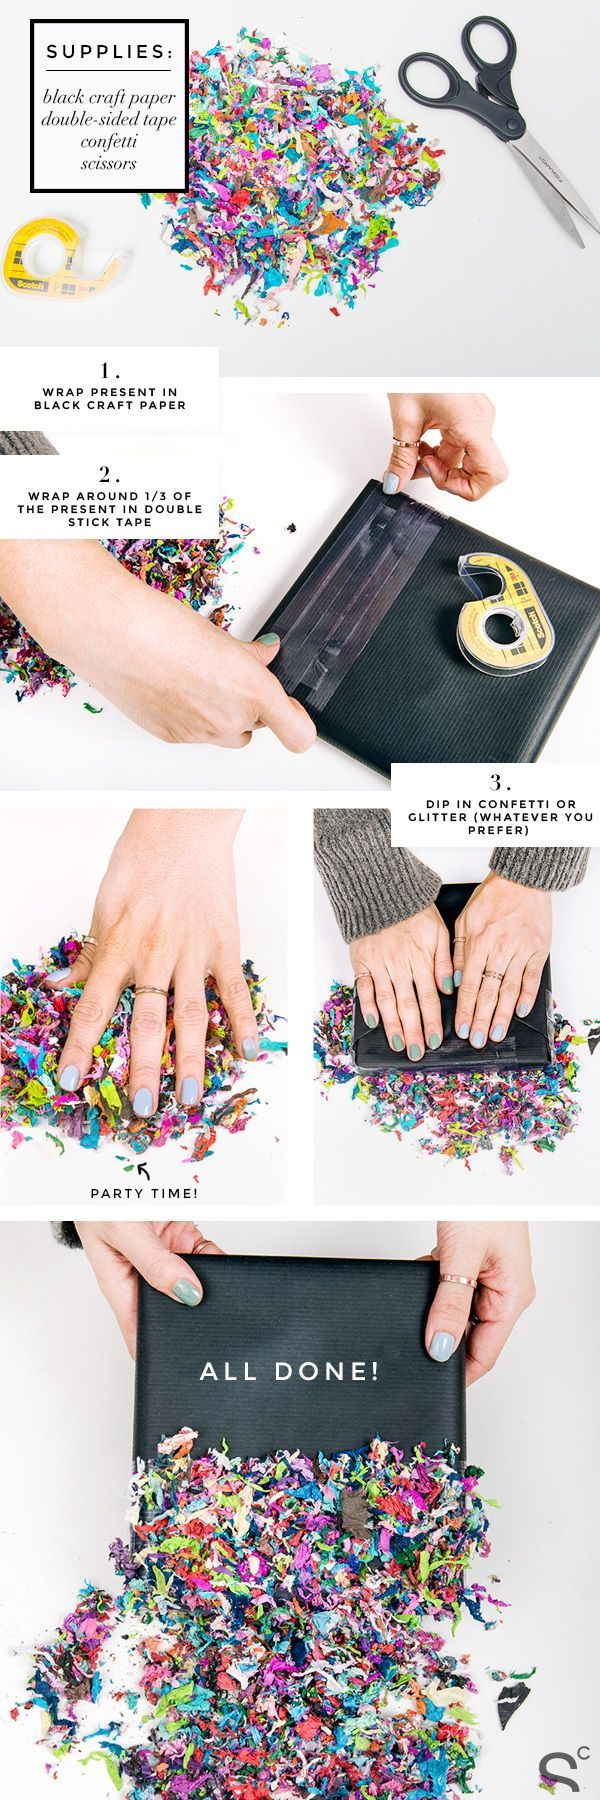 7 Days of Gift Wrapping Ideas: DIY Confetti Dipped Presents